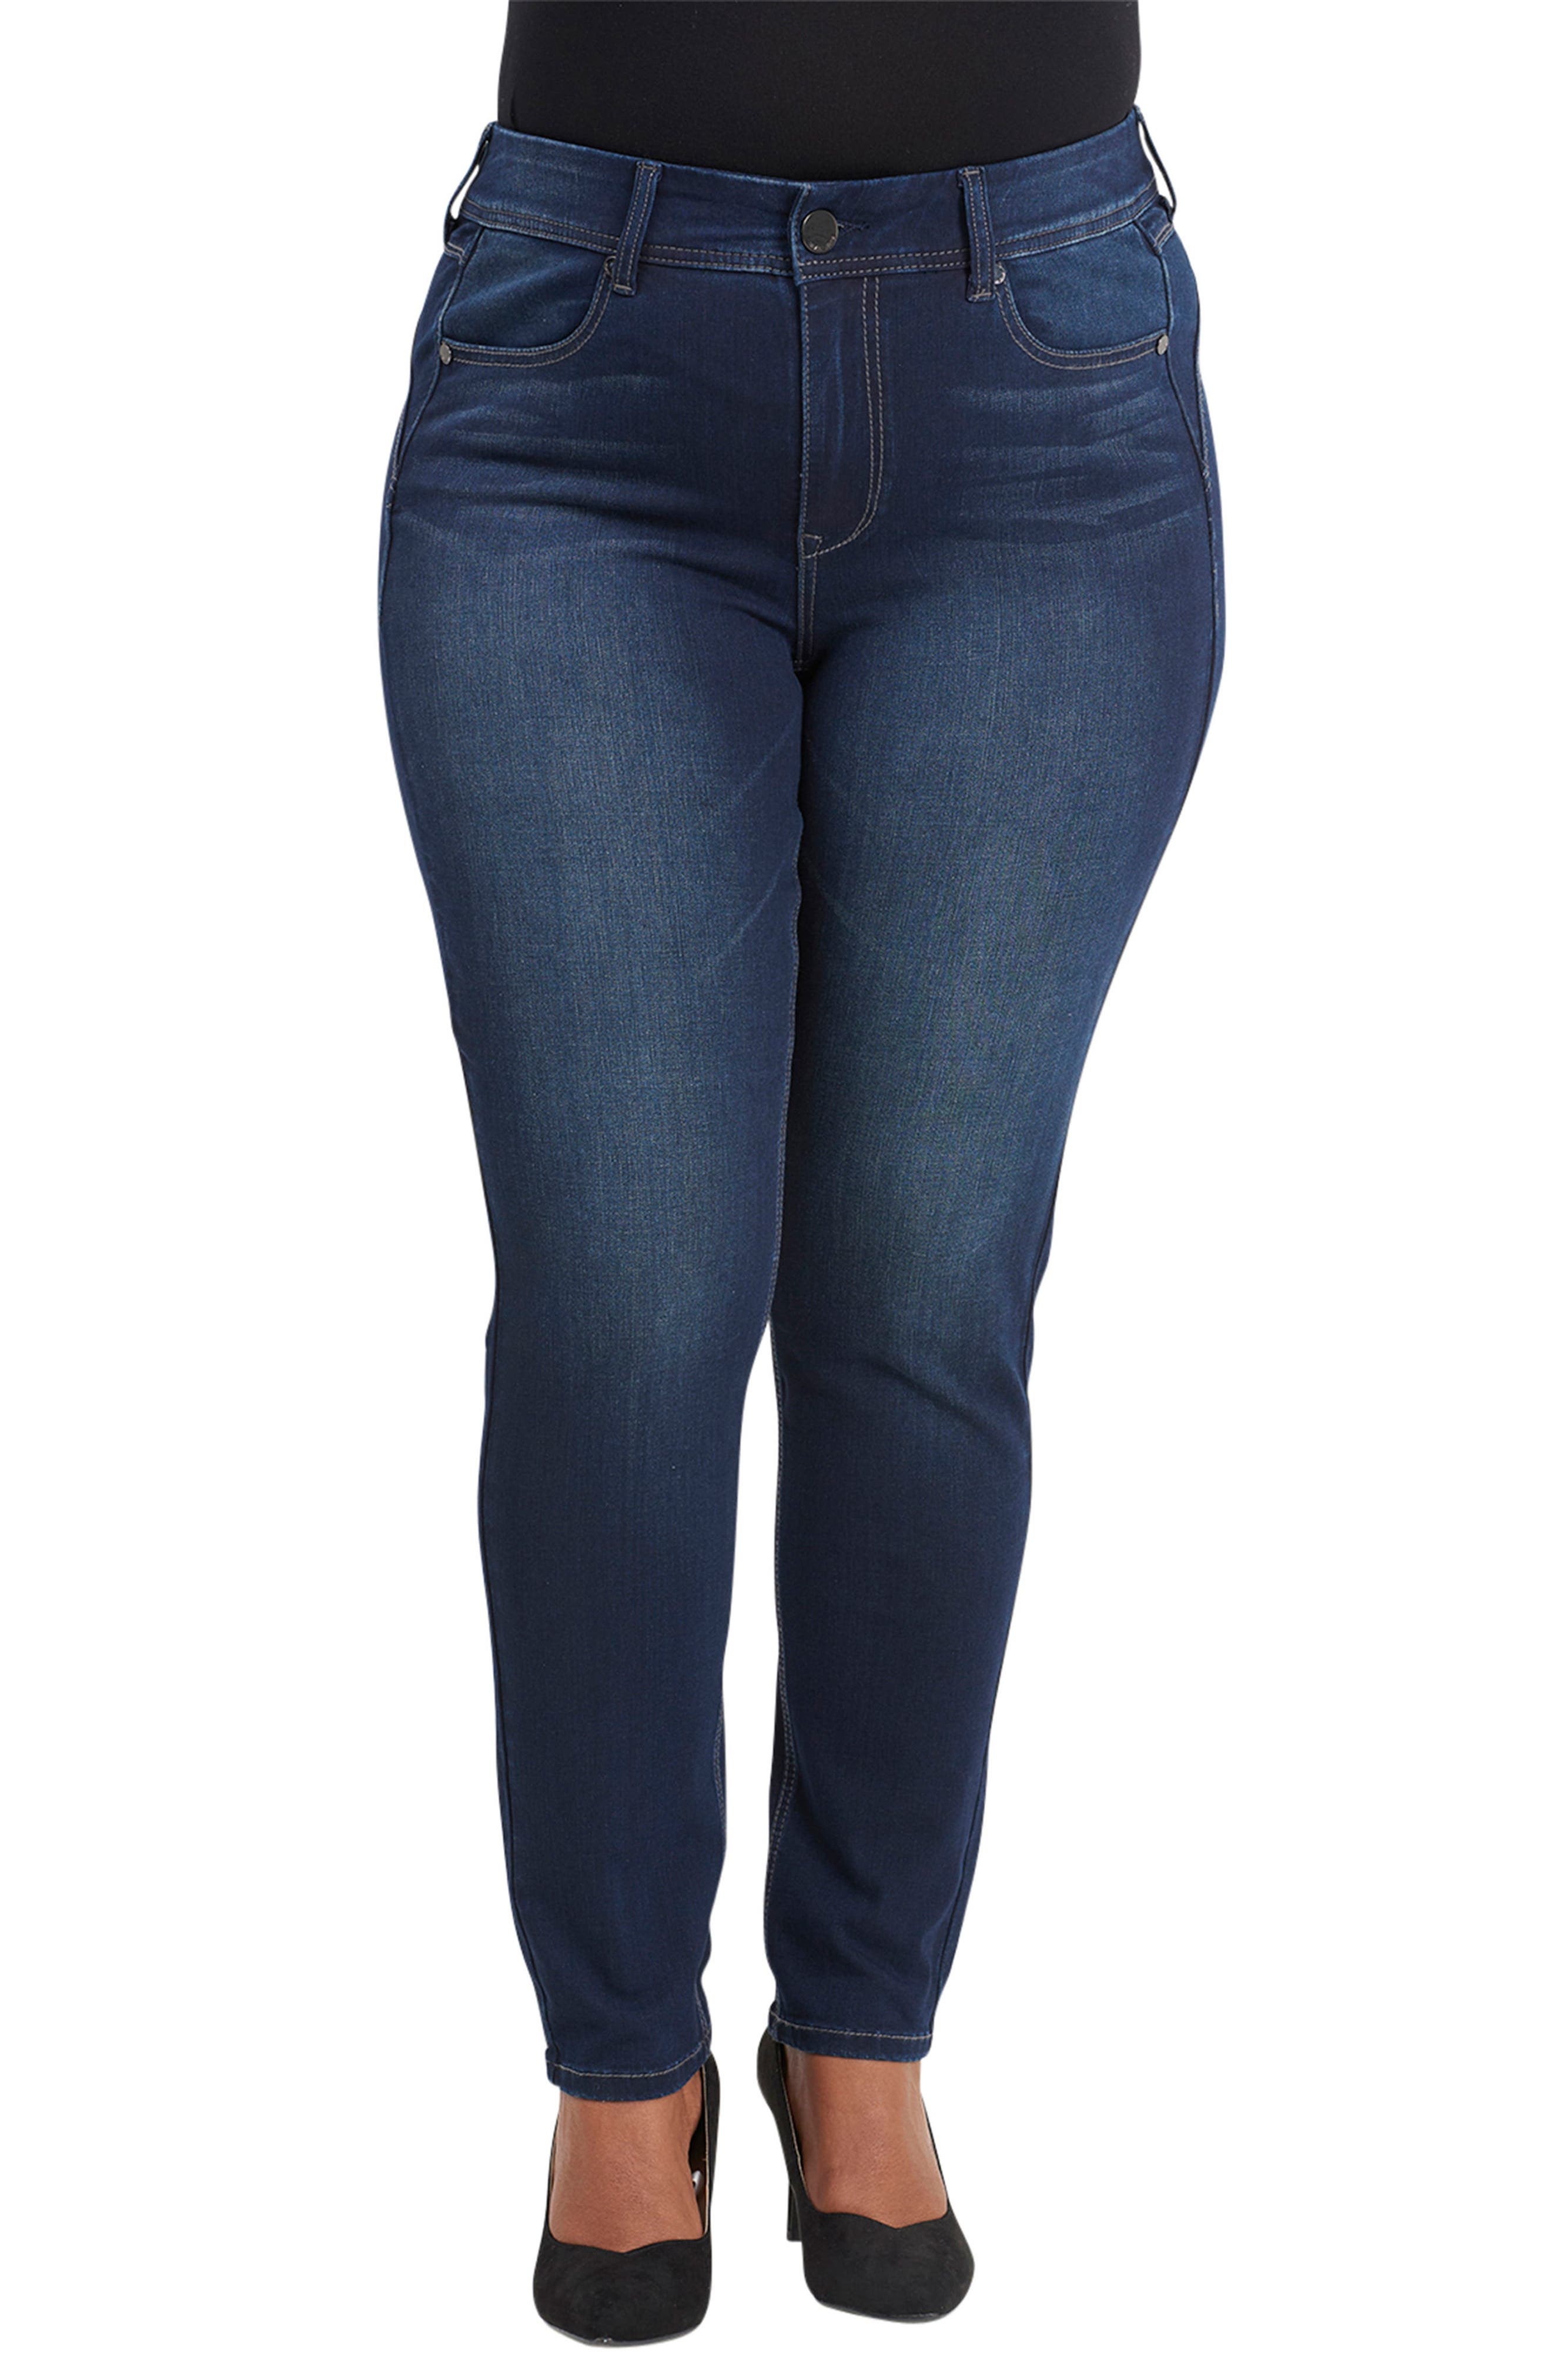 Bootyshaper Skinny Jeans,                             Main thumbnail 1, color,                             BLUE